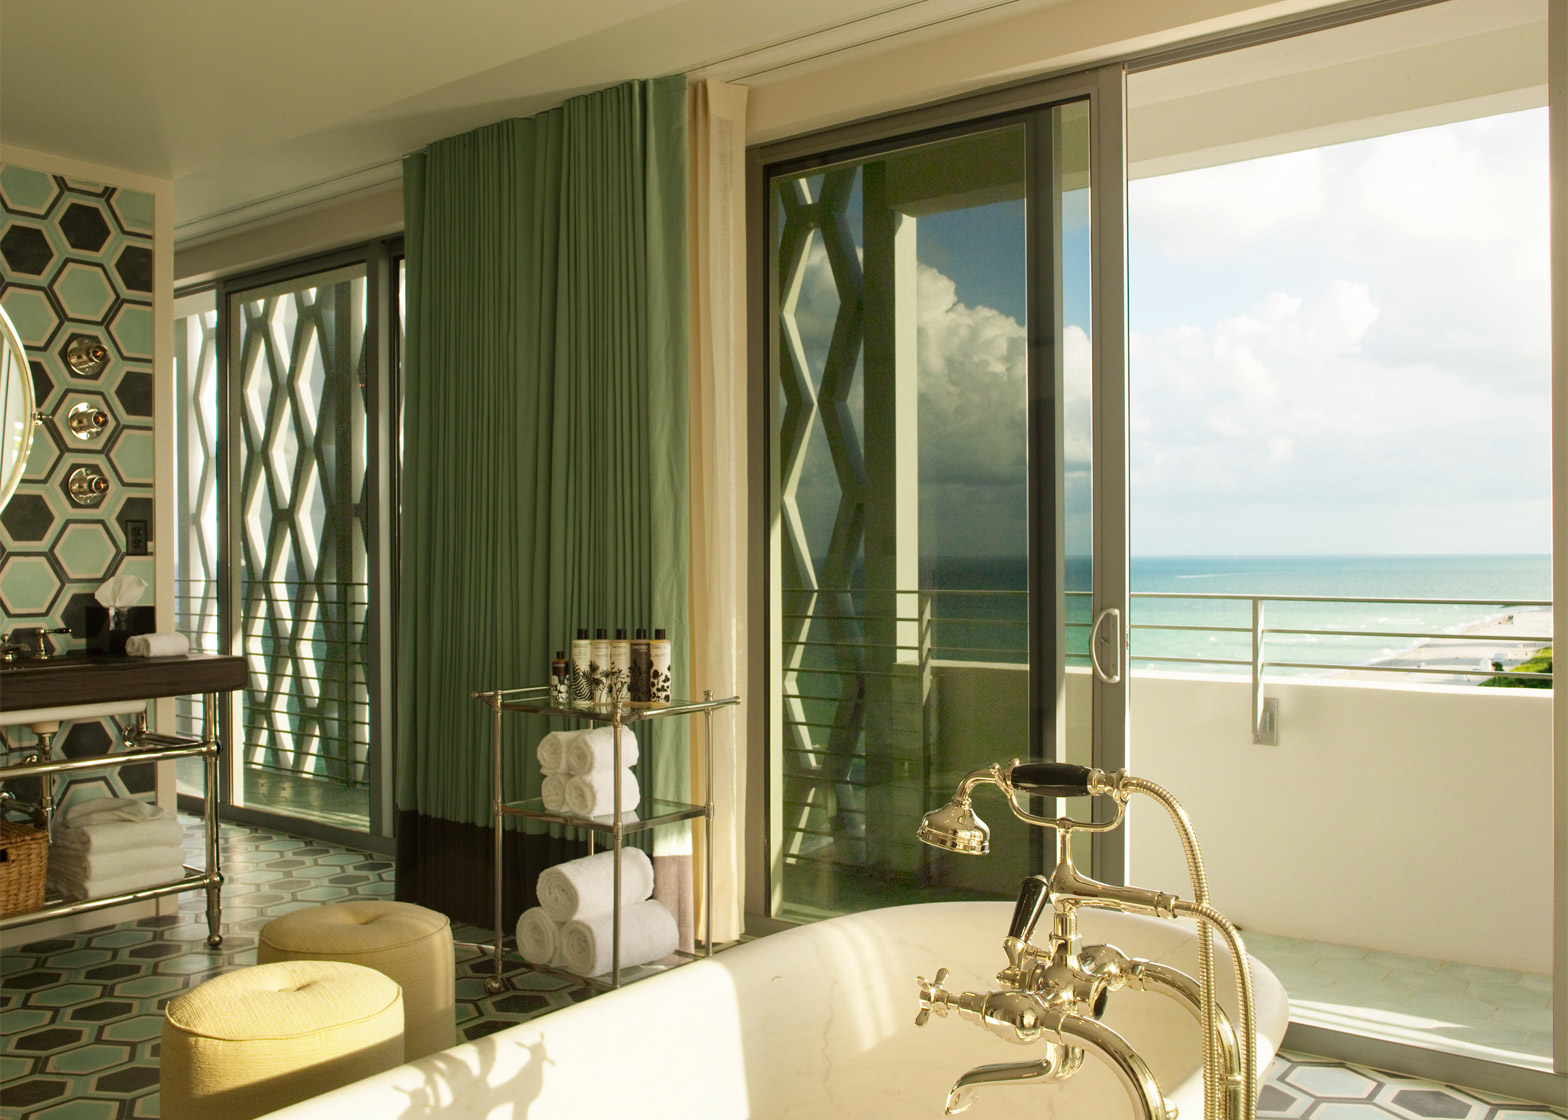 Soho Beach House, Miami, USA